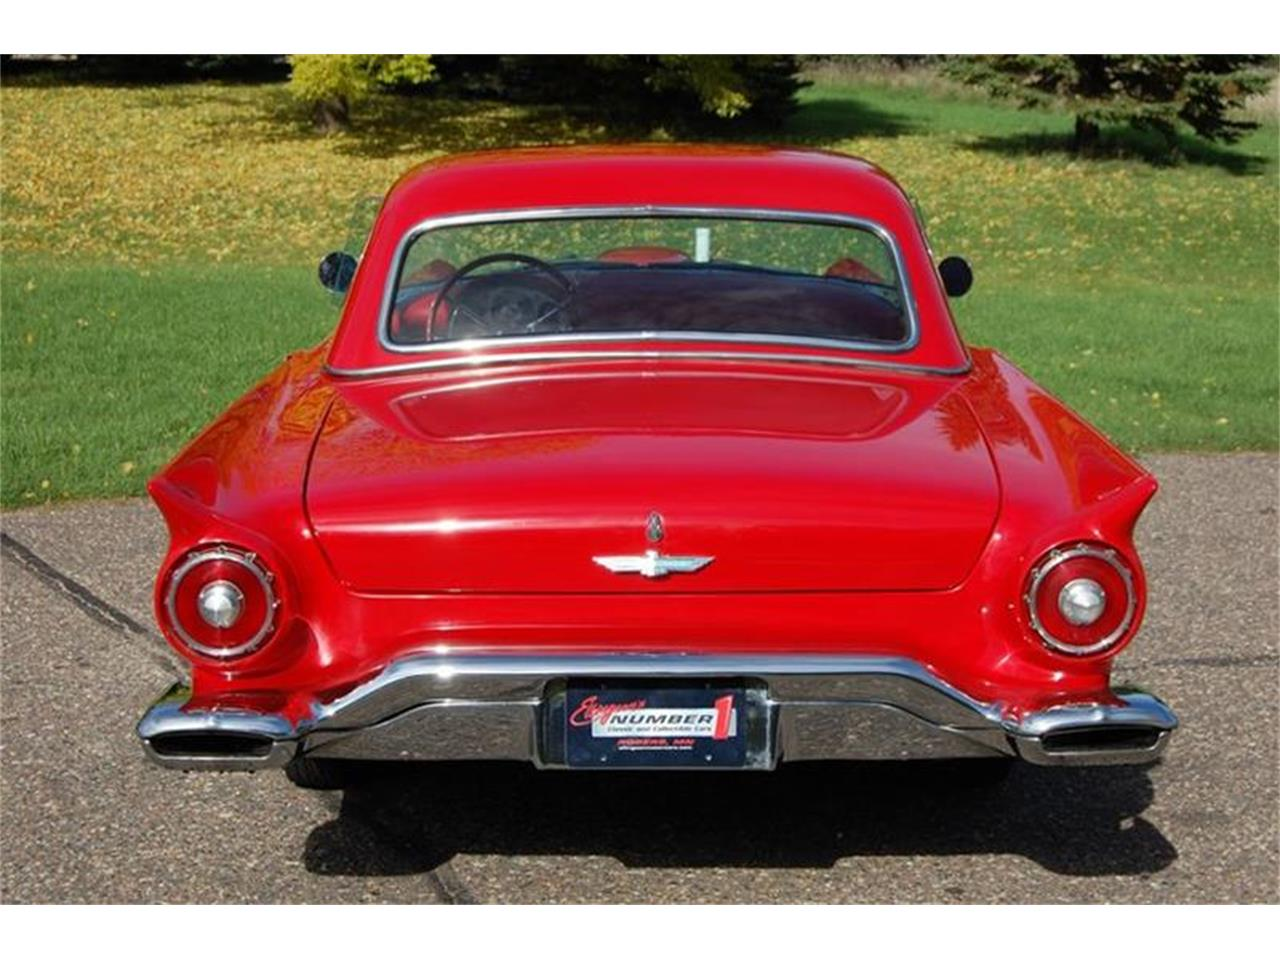 Large Picture of Classic 1957 Ford Thunderbird - $37,950.00 Offered by Ellingson Motorcars - ORW4